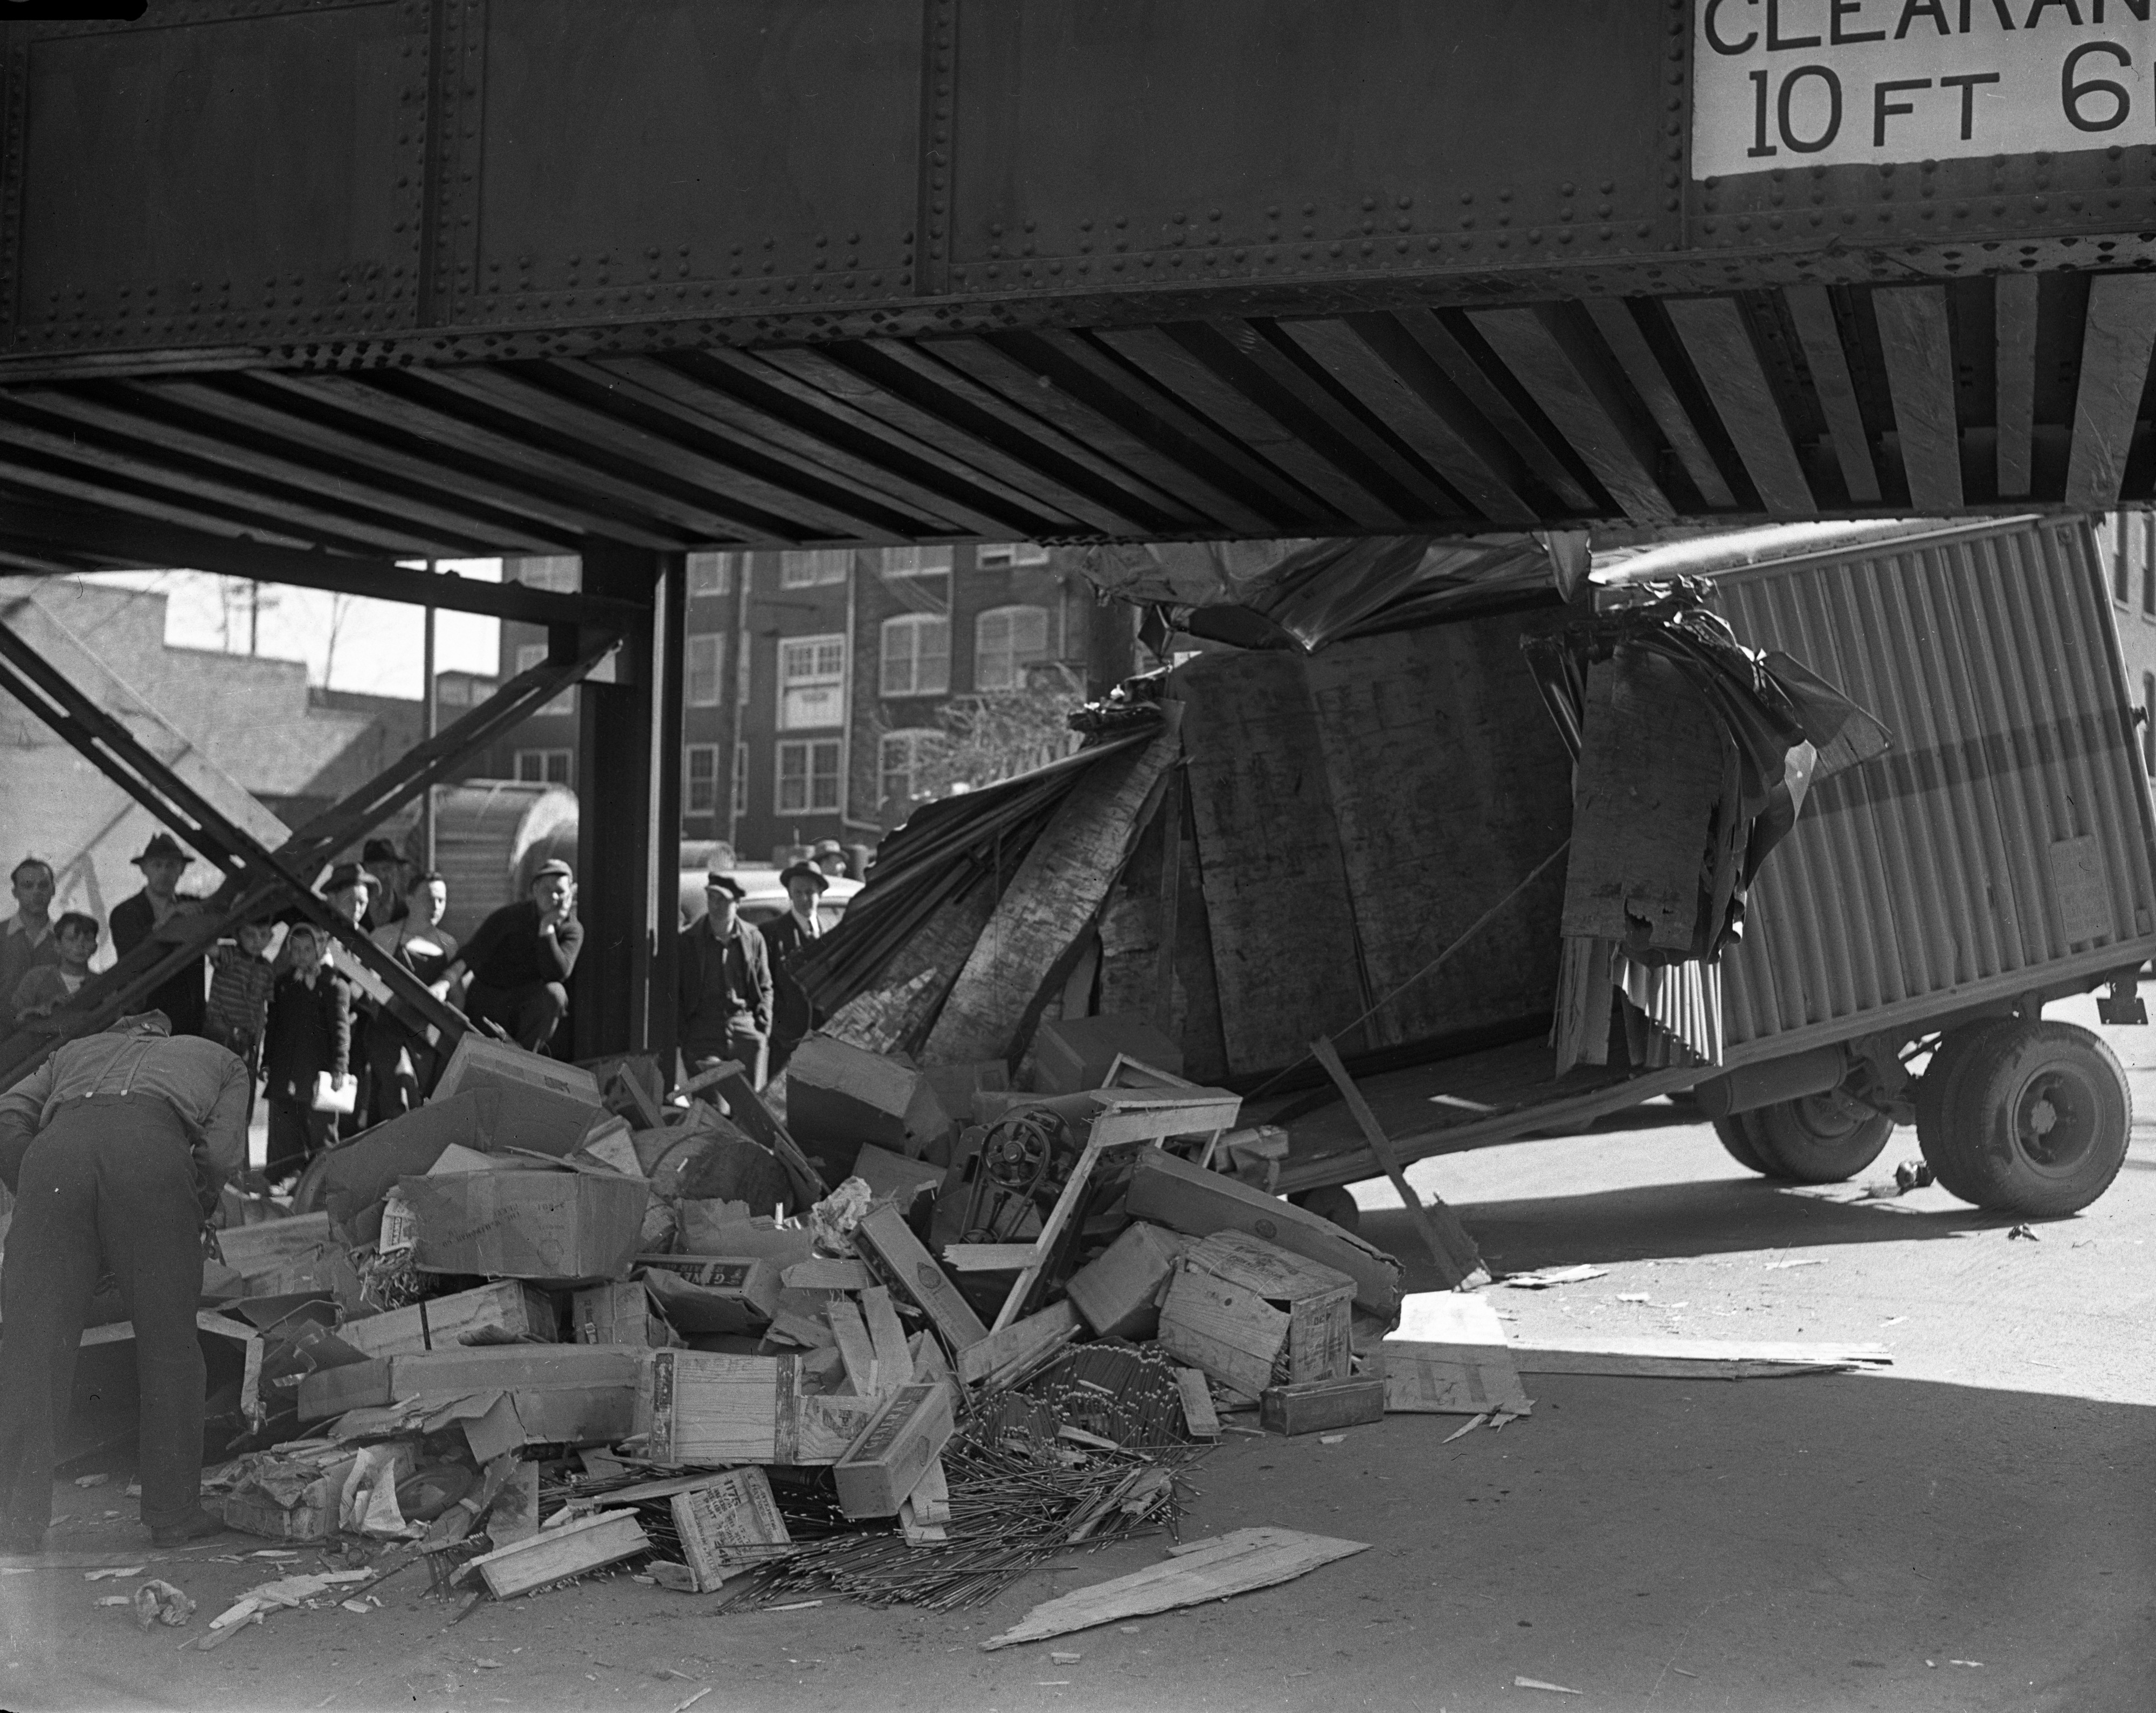 Truck collides with Ann Arbor Railroad viaduct on Washington St., April 25, 1942 image